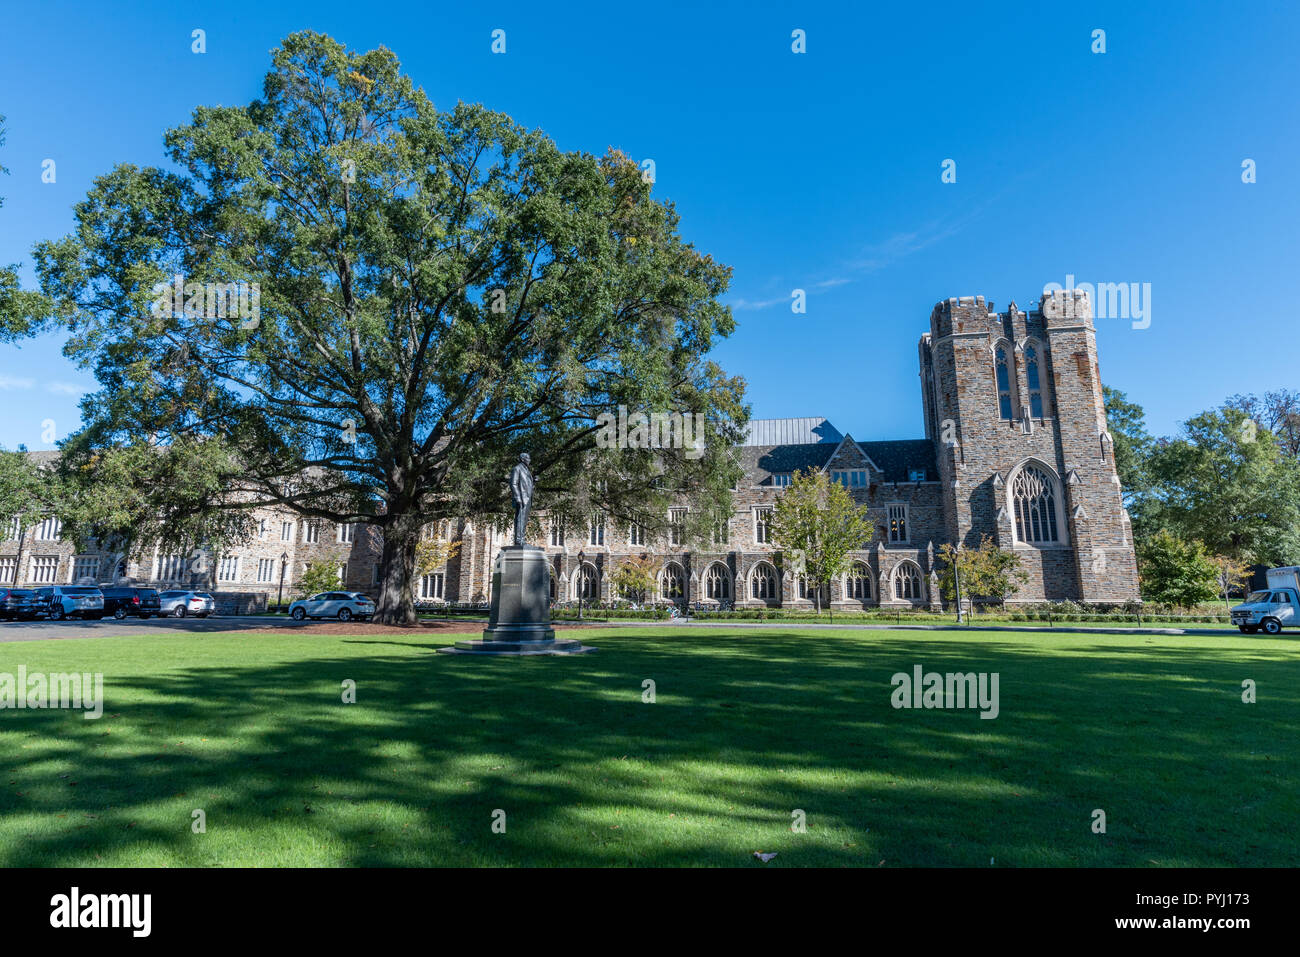 Abele Quad at the Duke University in early autumn, Durham, North Carolina - Stock Image